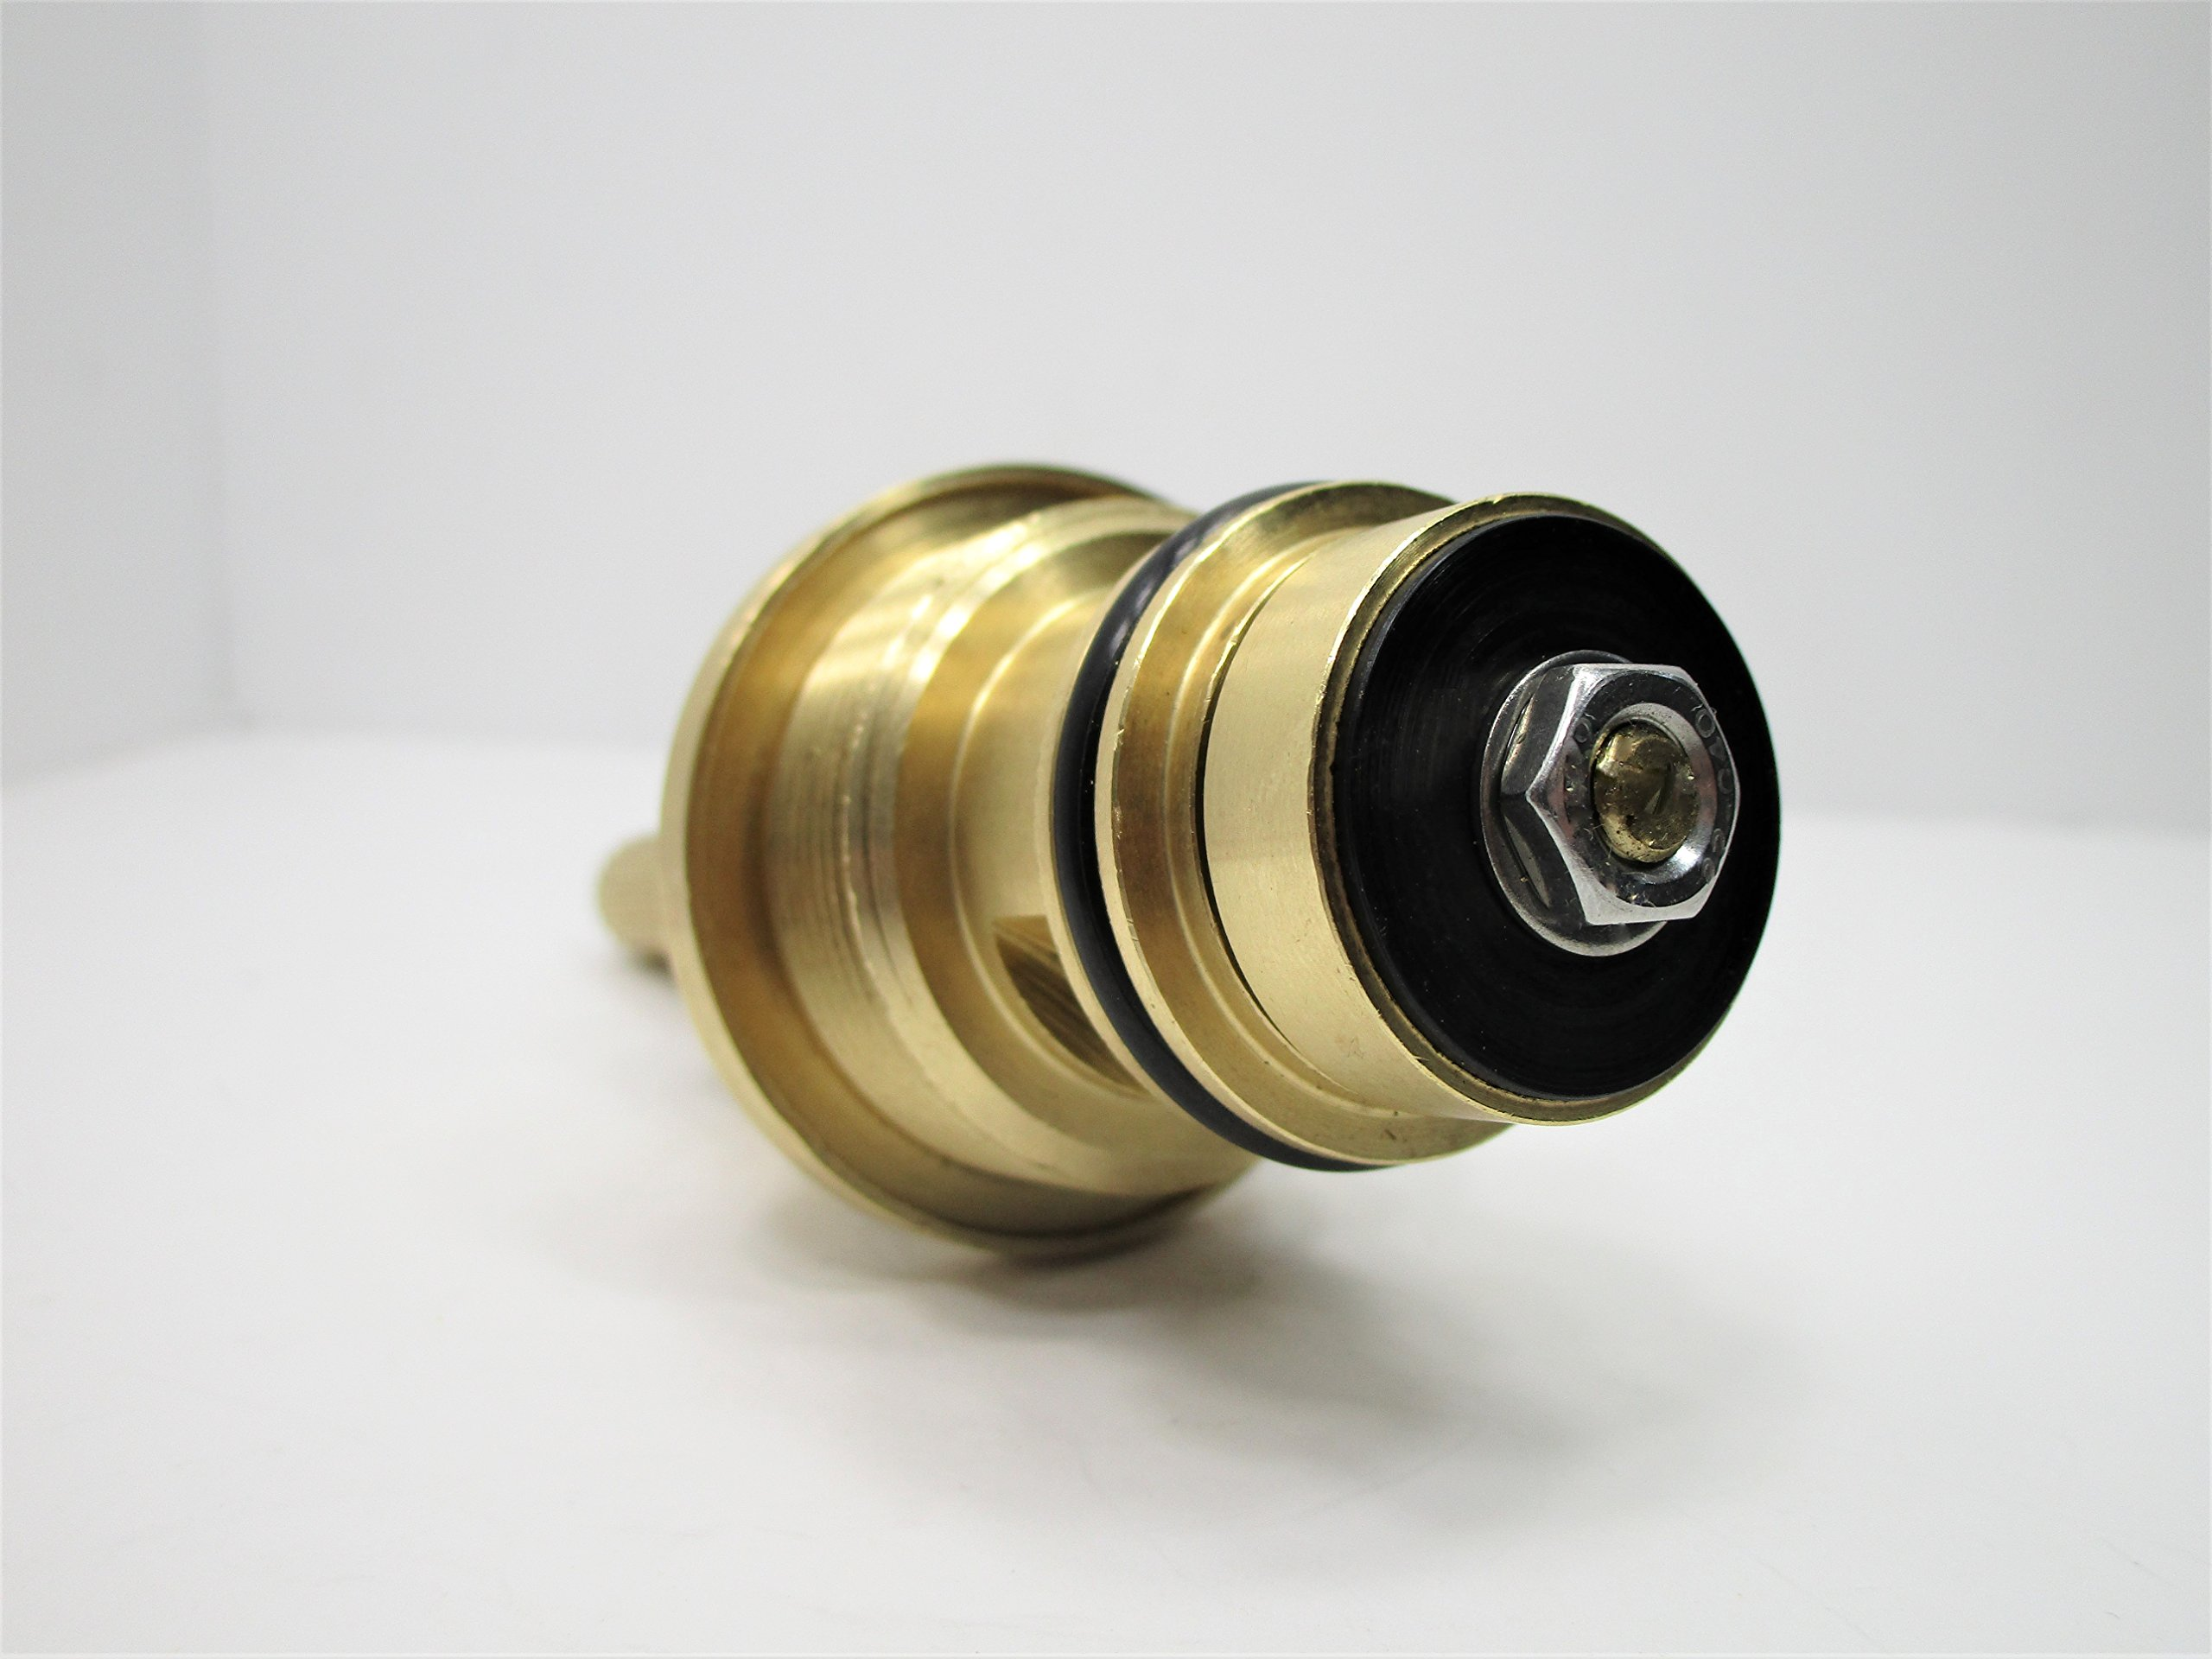 Diverter Stem fits JADO with 4mm Handle Screw Tapping by Fore-Kast Sales (Image #2)